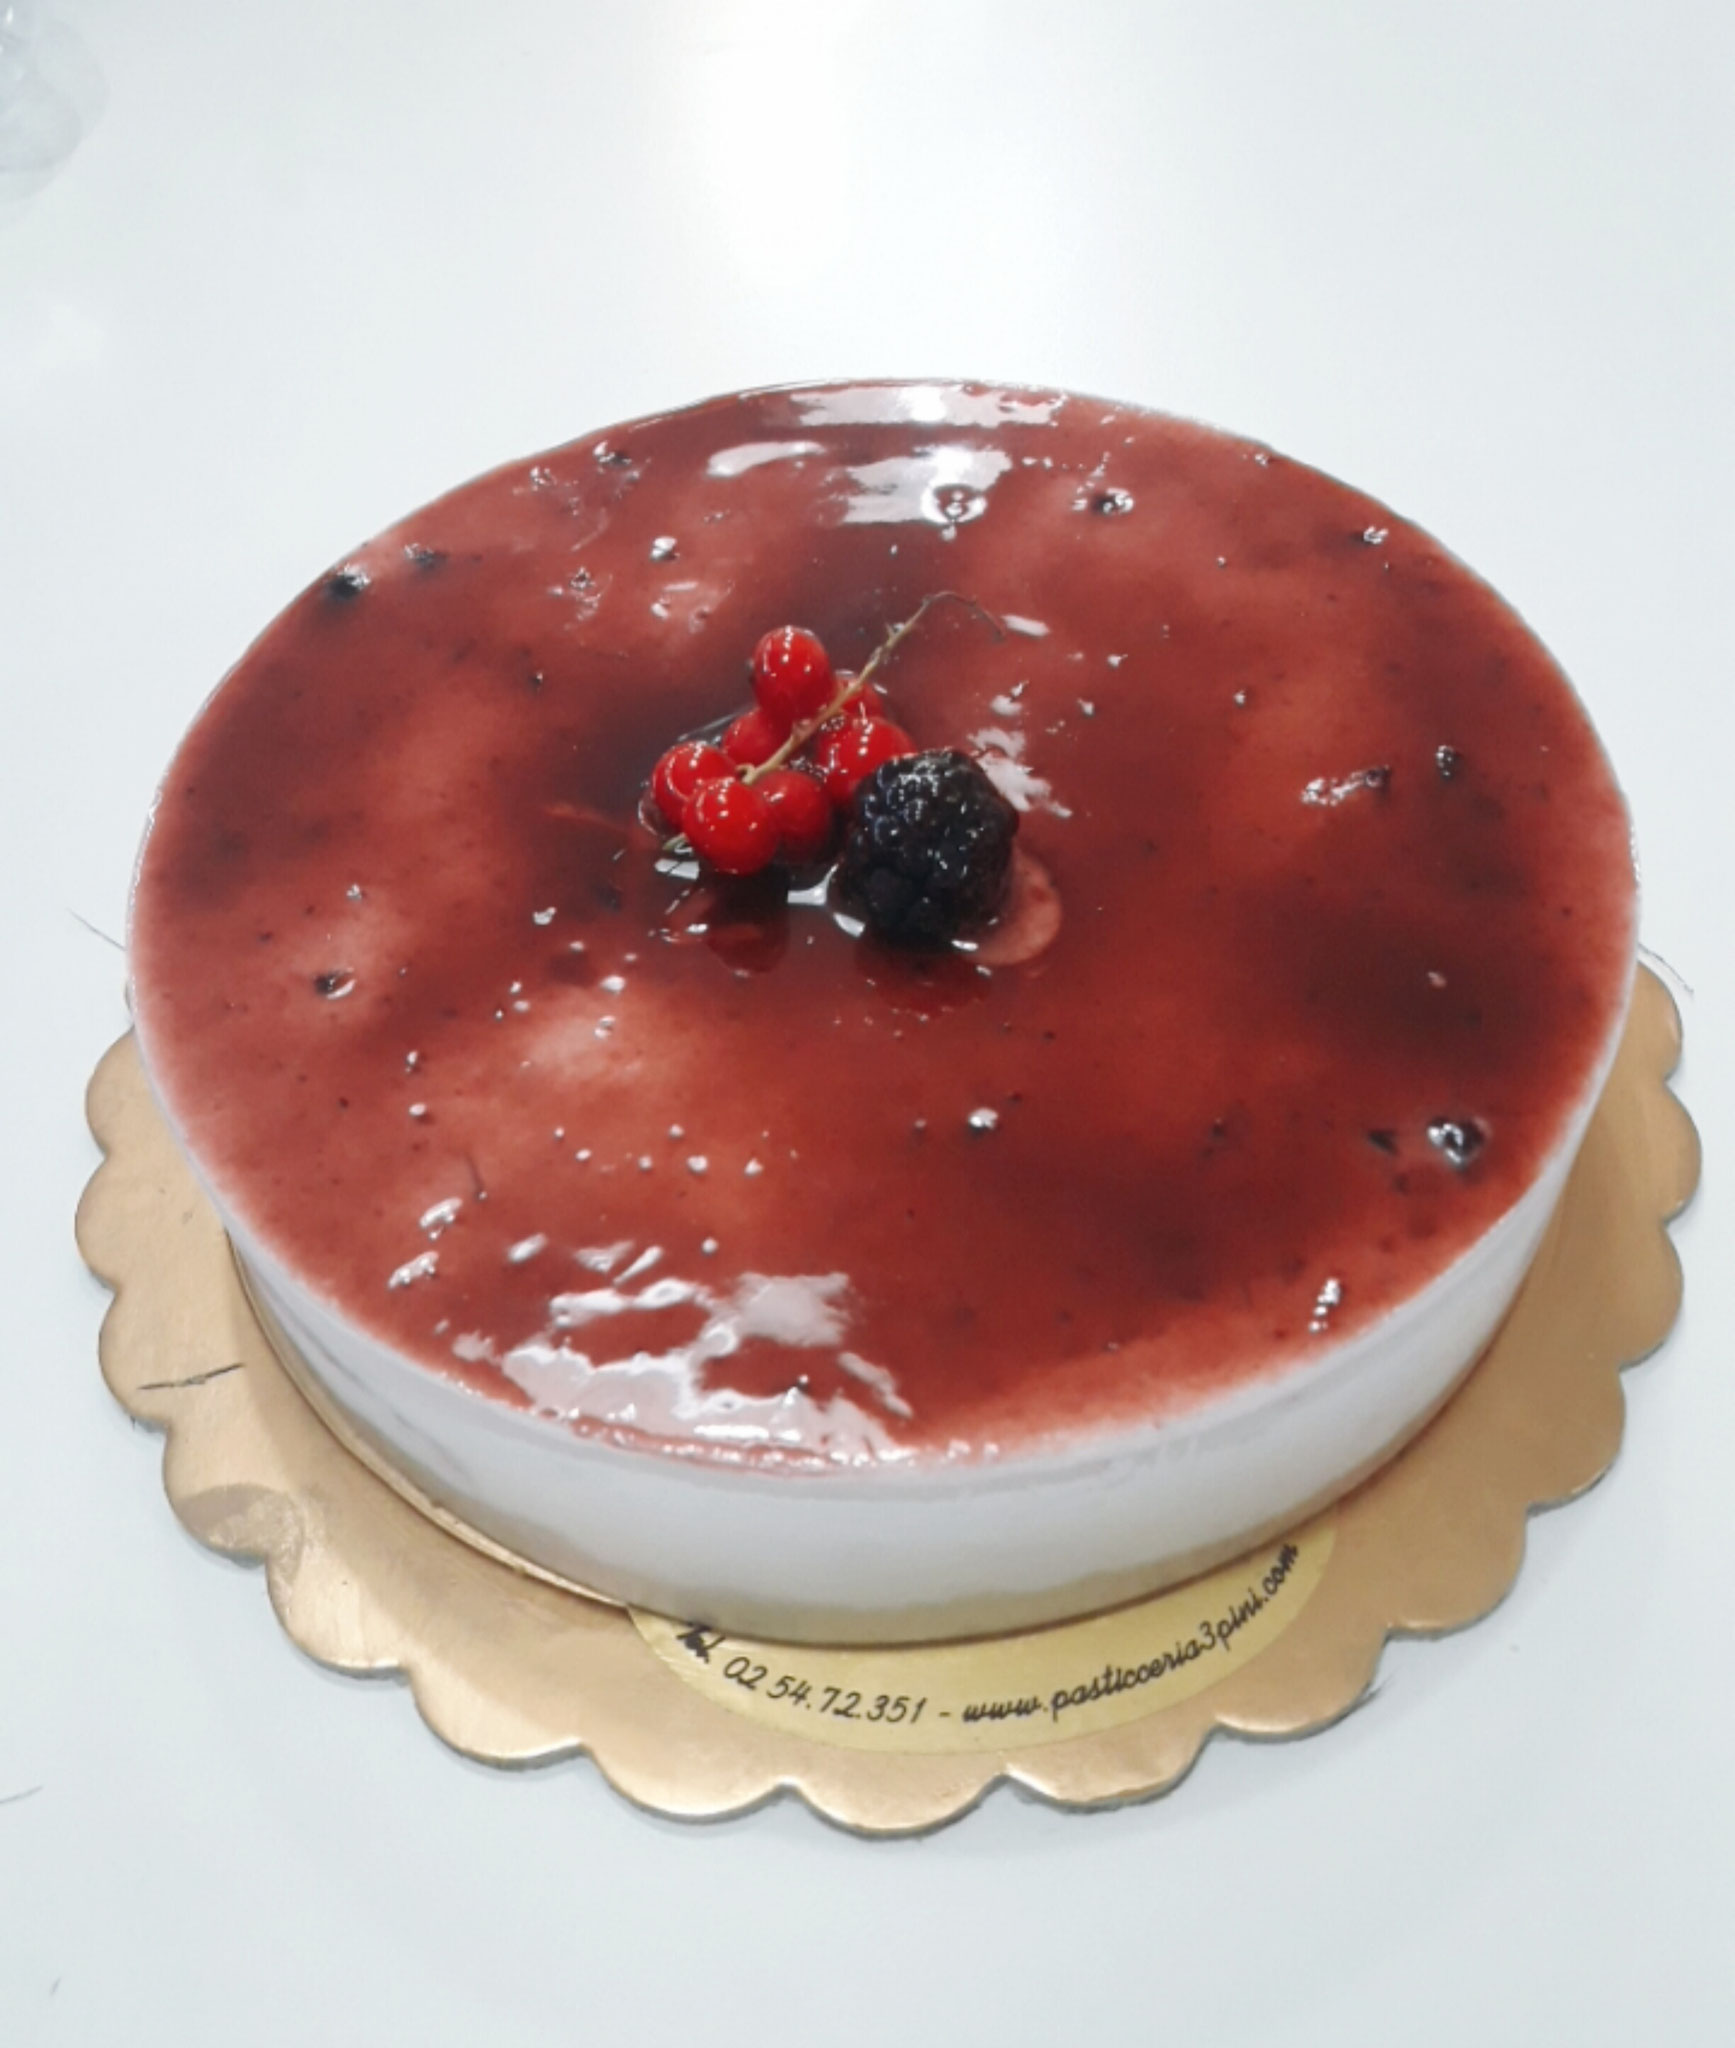 Cheescake frutti di bosco